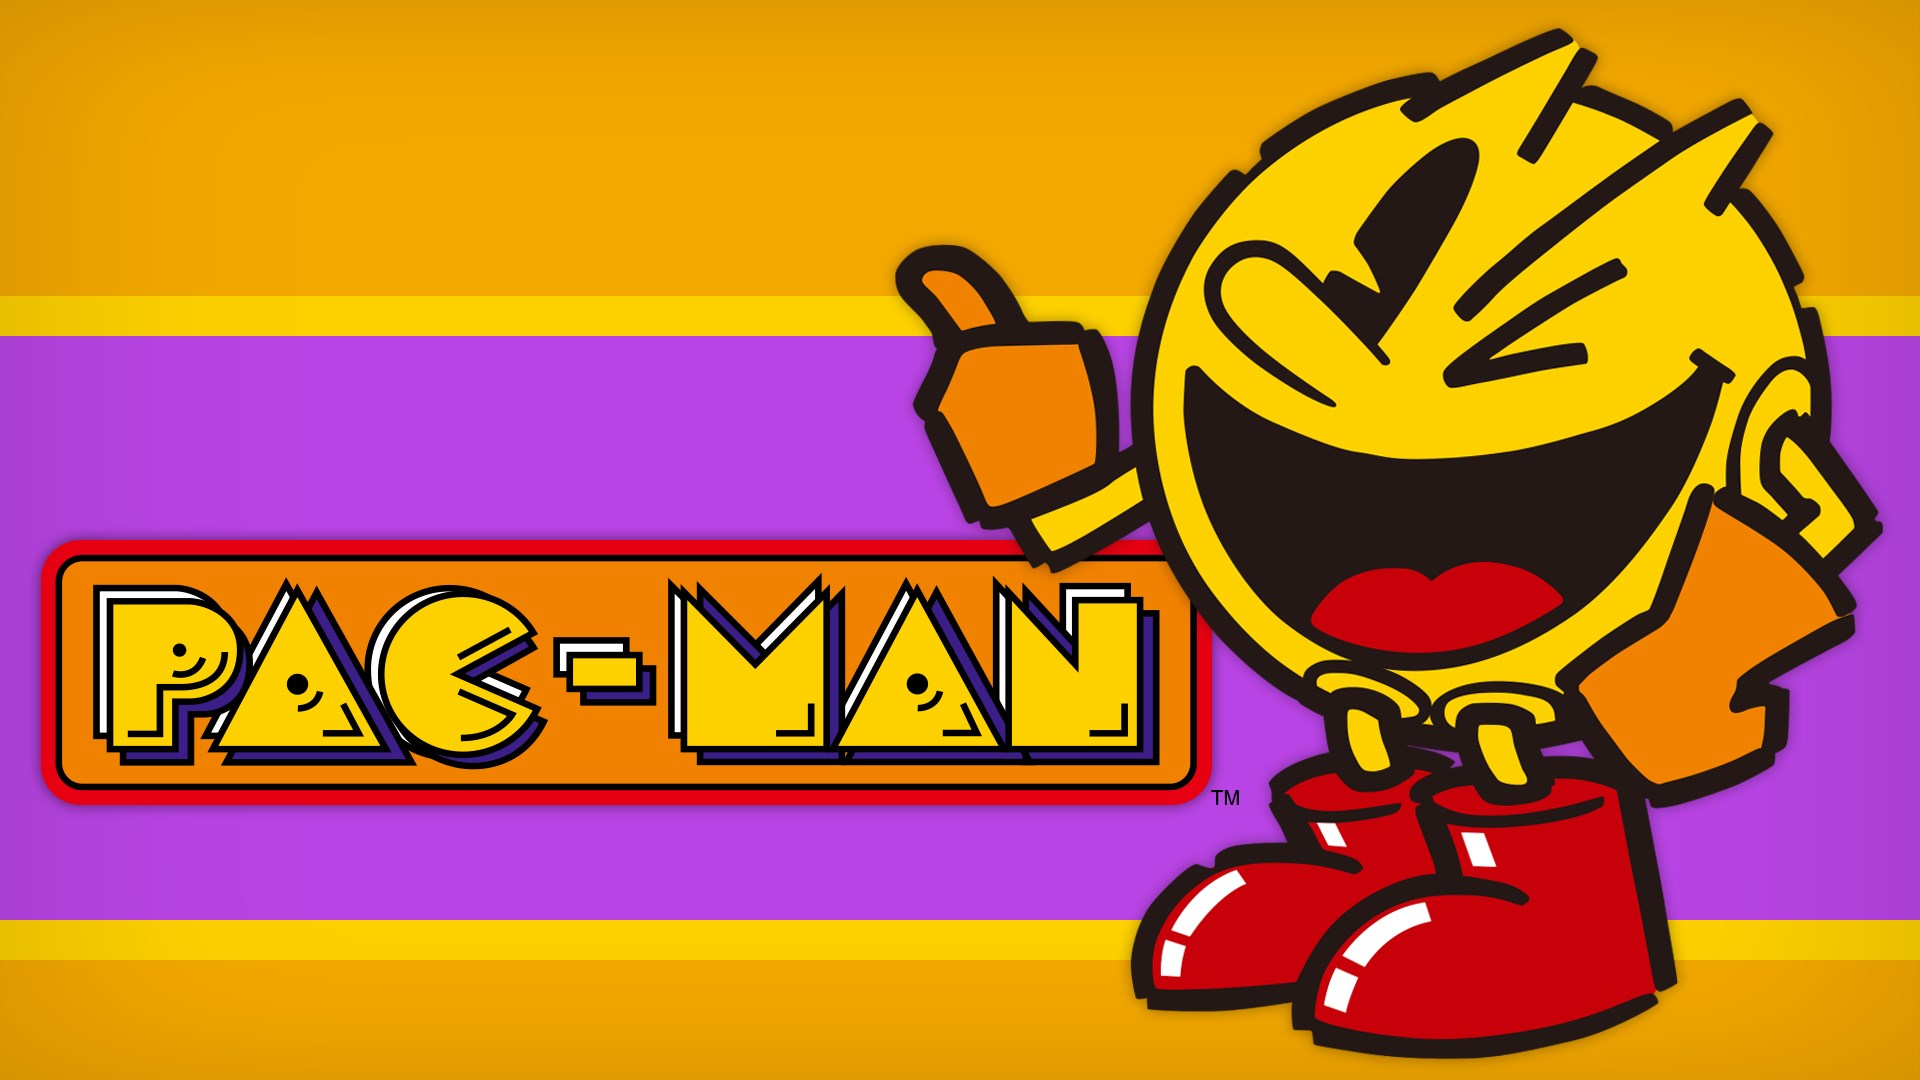 Buy PAC-MAN - Microsoft Store en-IN